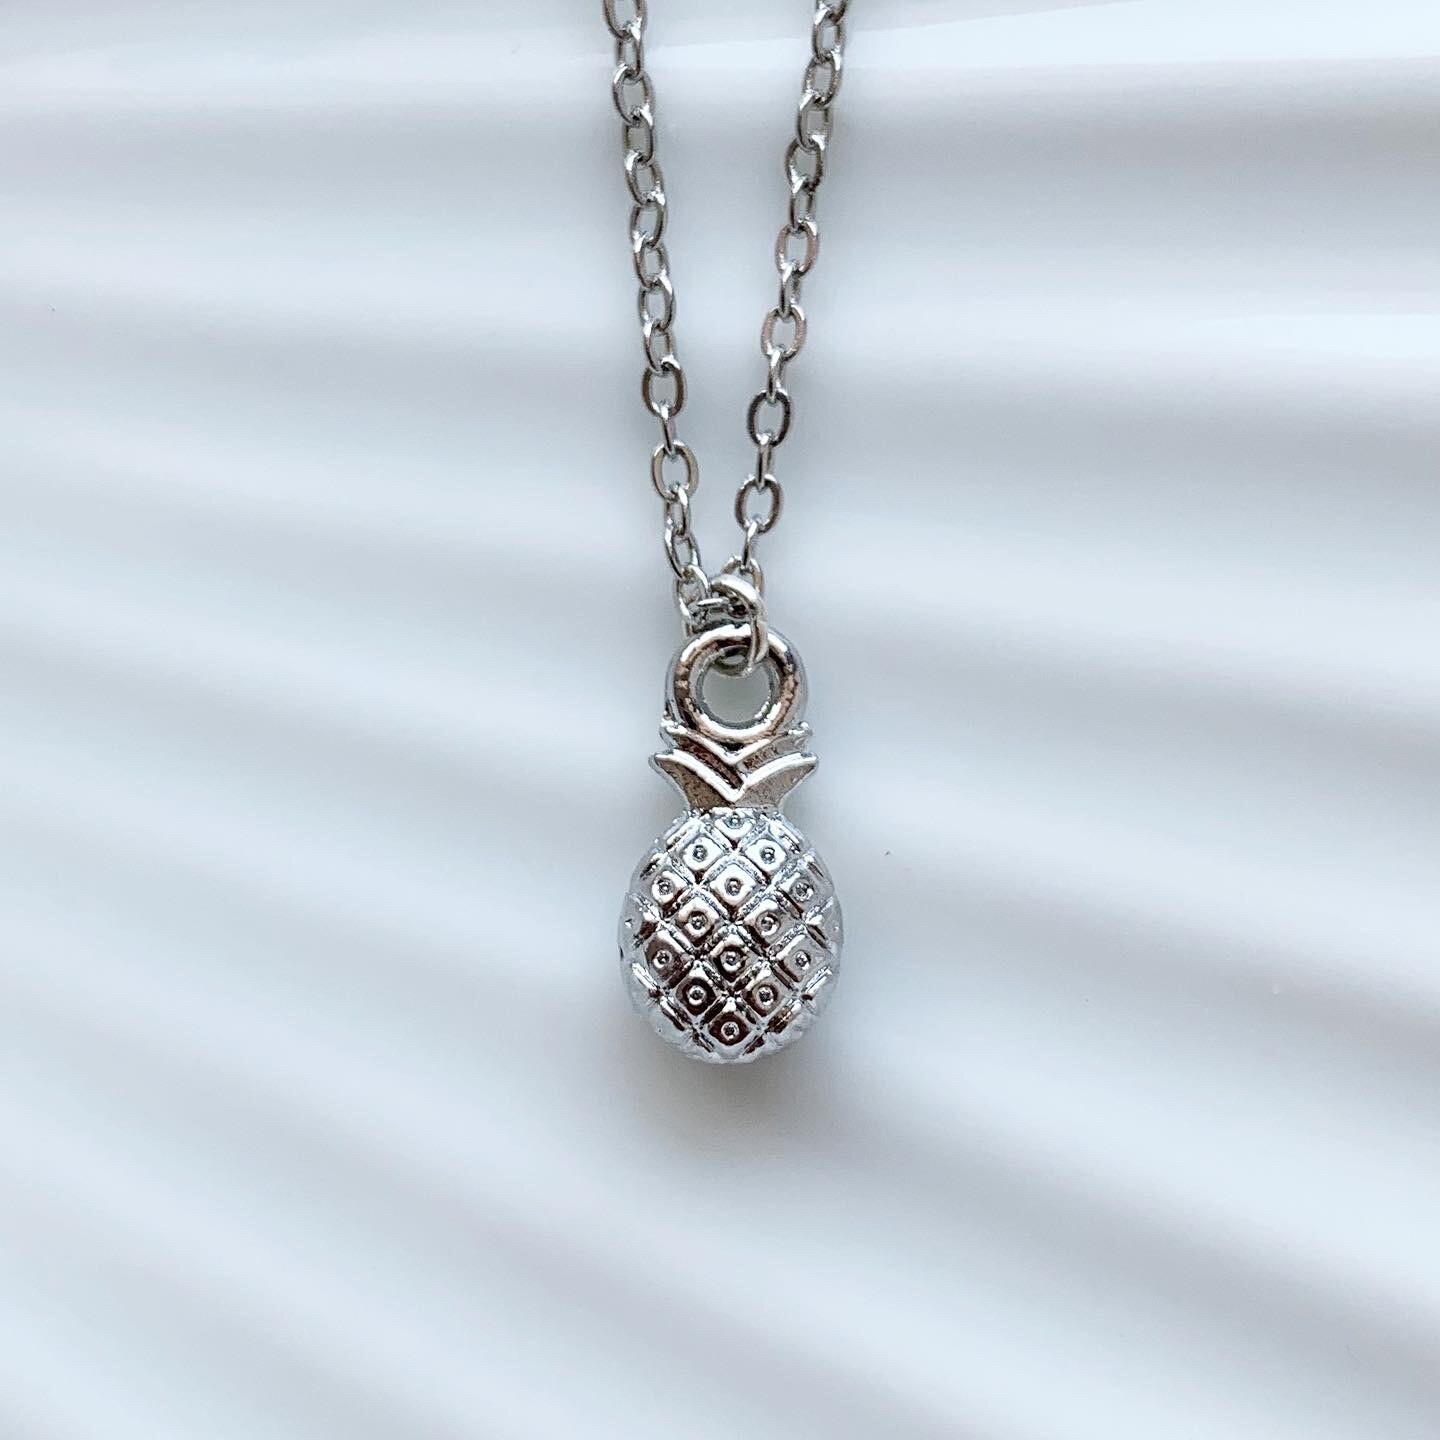 Pineapple ketting zilver